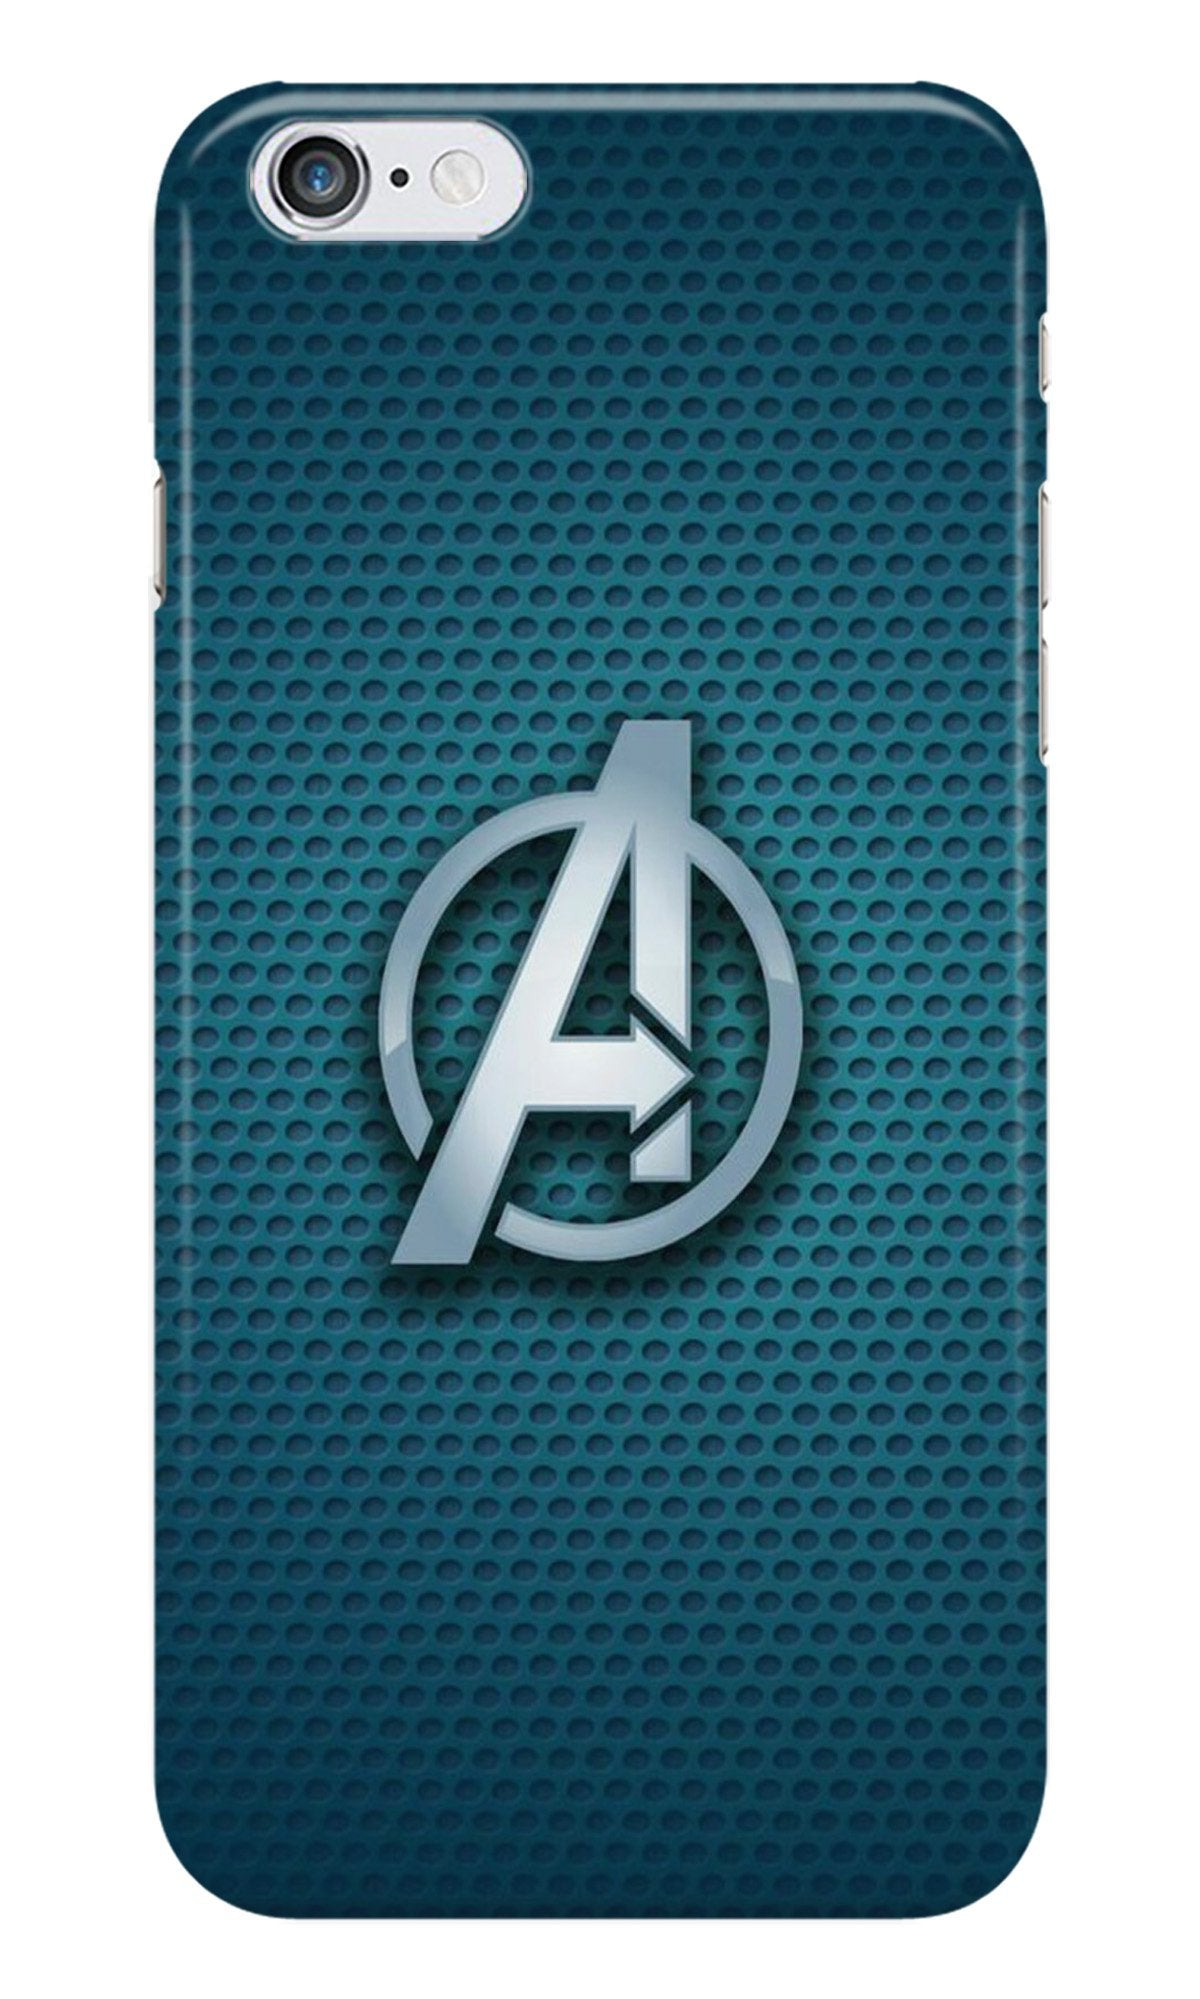 Avengers Case for Iphone 6/6S (Design No. 246)